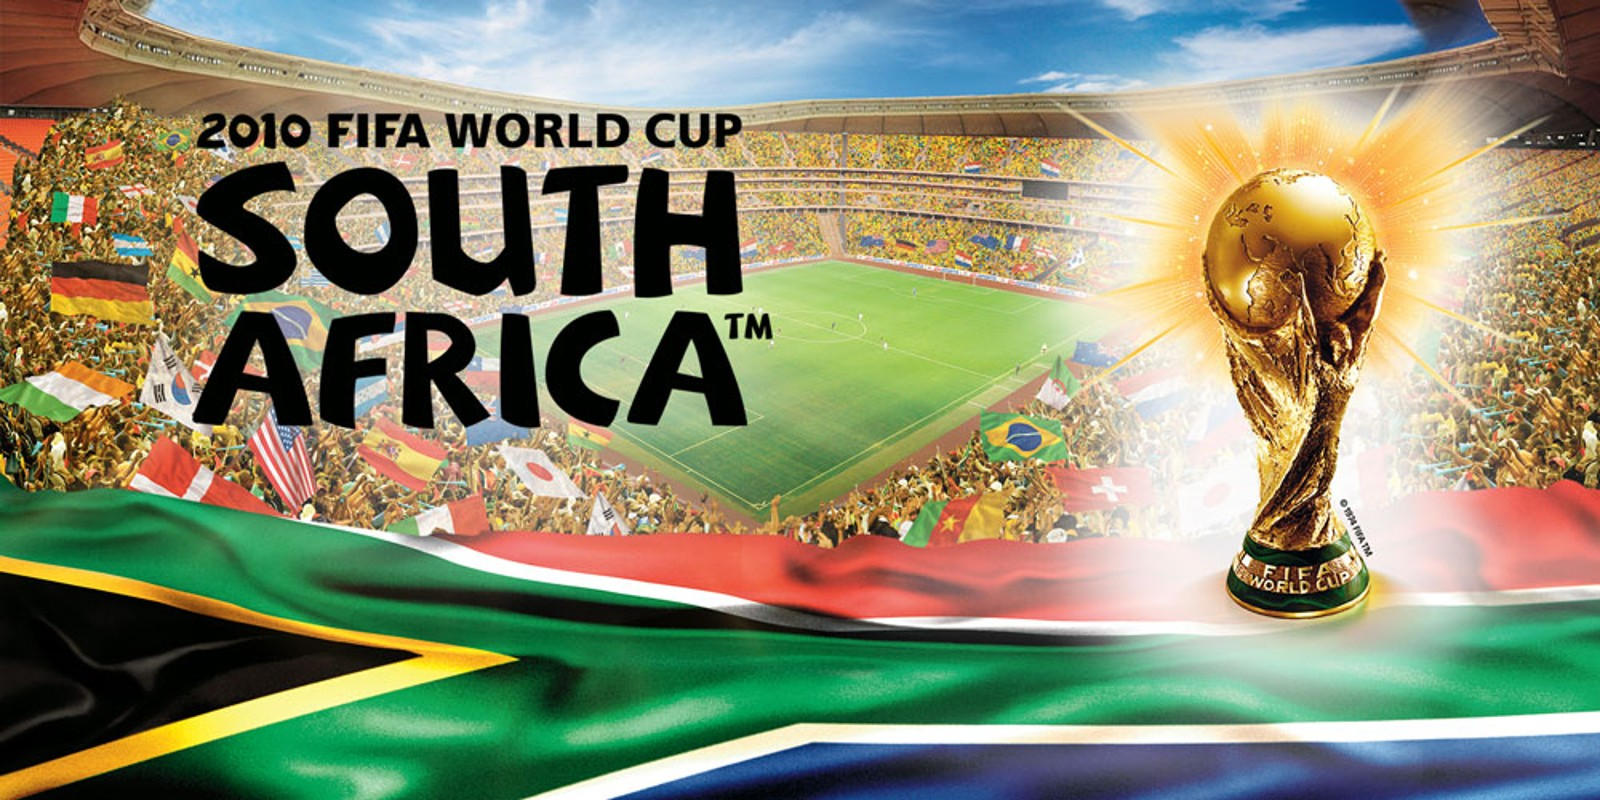 2010 FIFA World Cup South Africa | Wii | Games